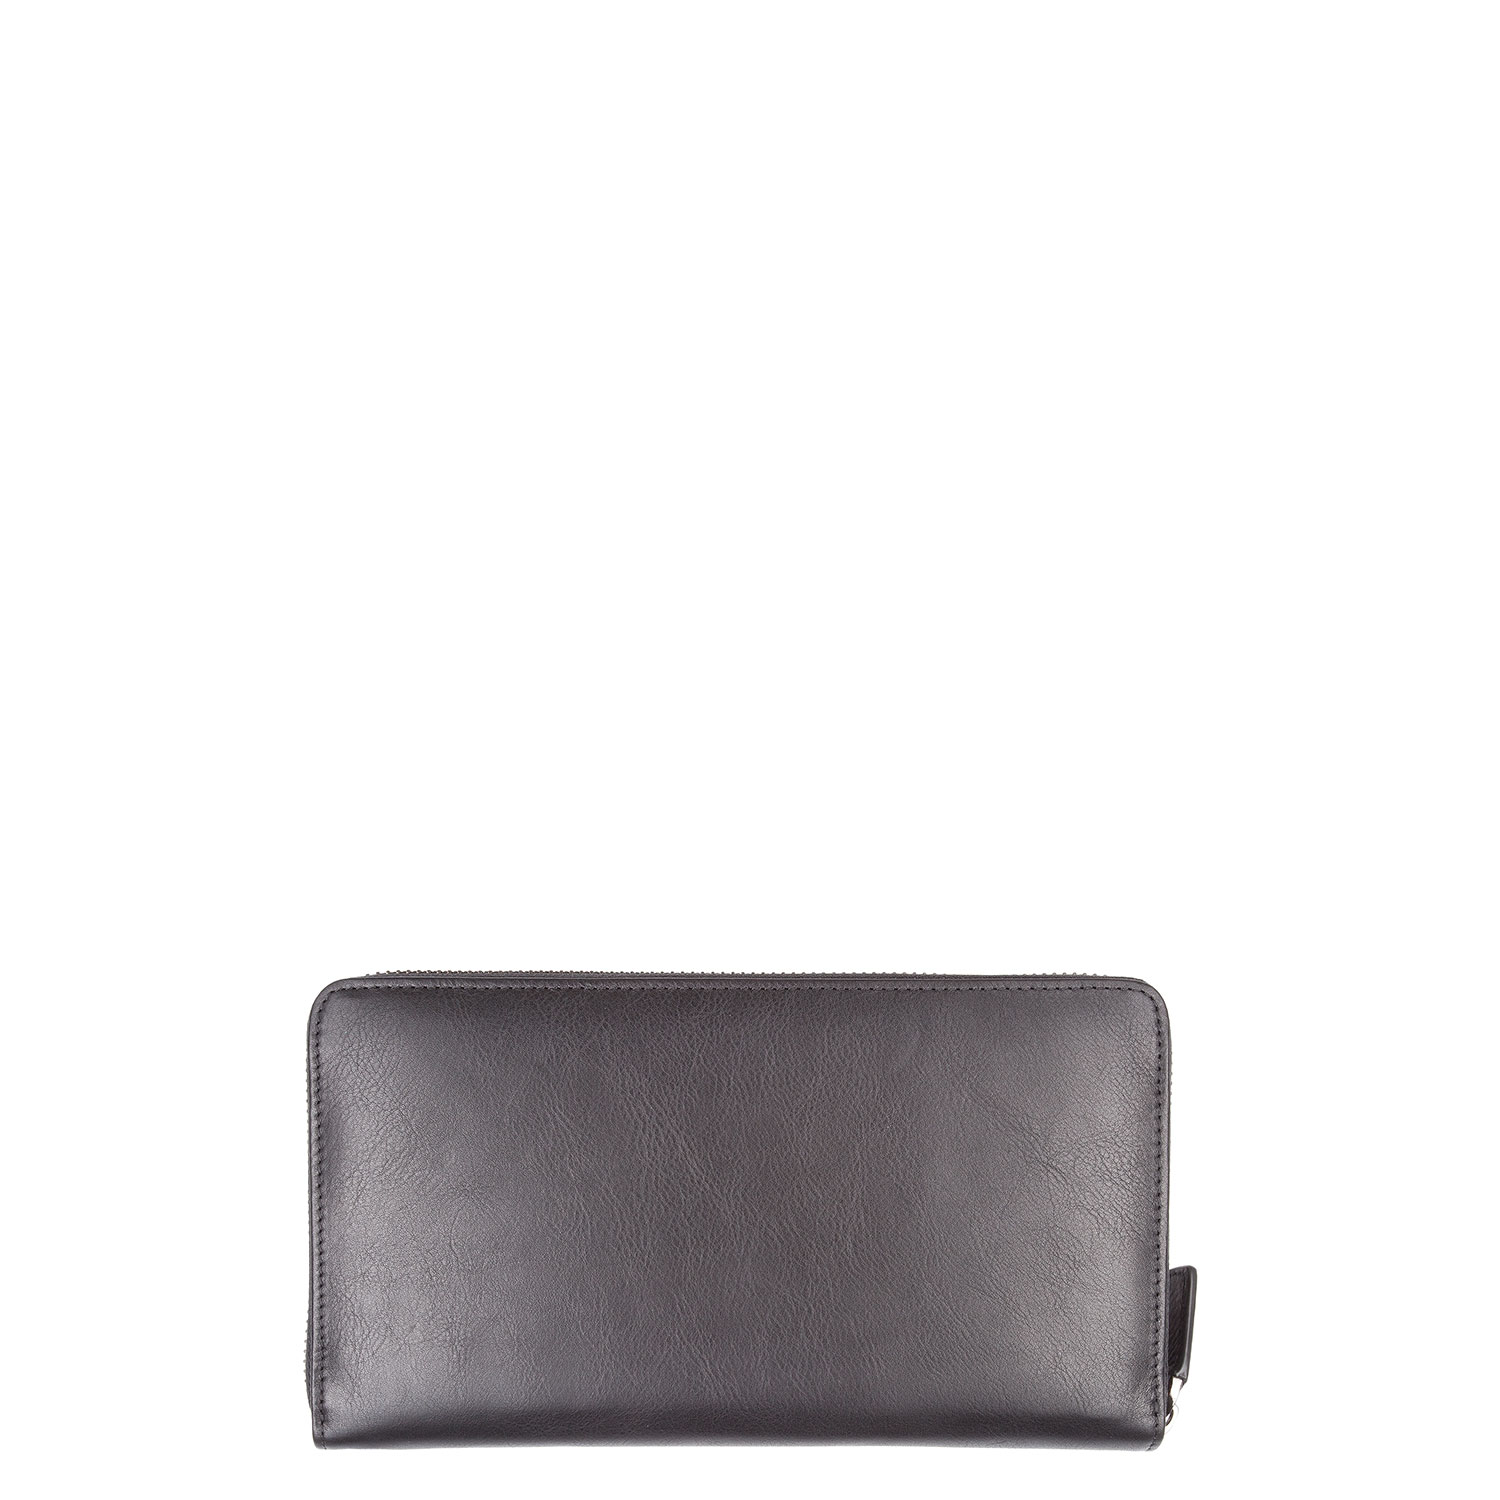 Travel wallet CARLO PAZOLINI BS-N1934-1